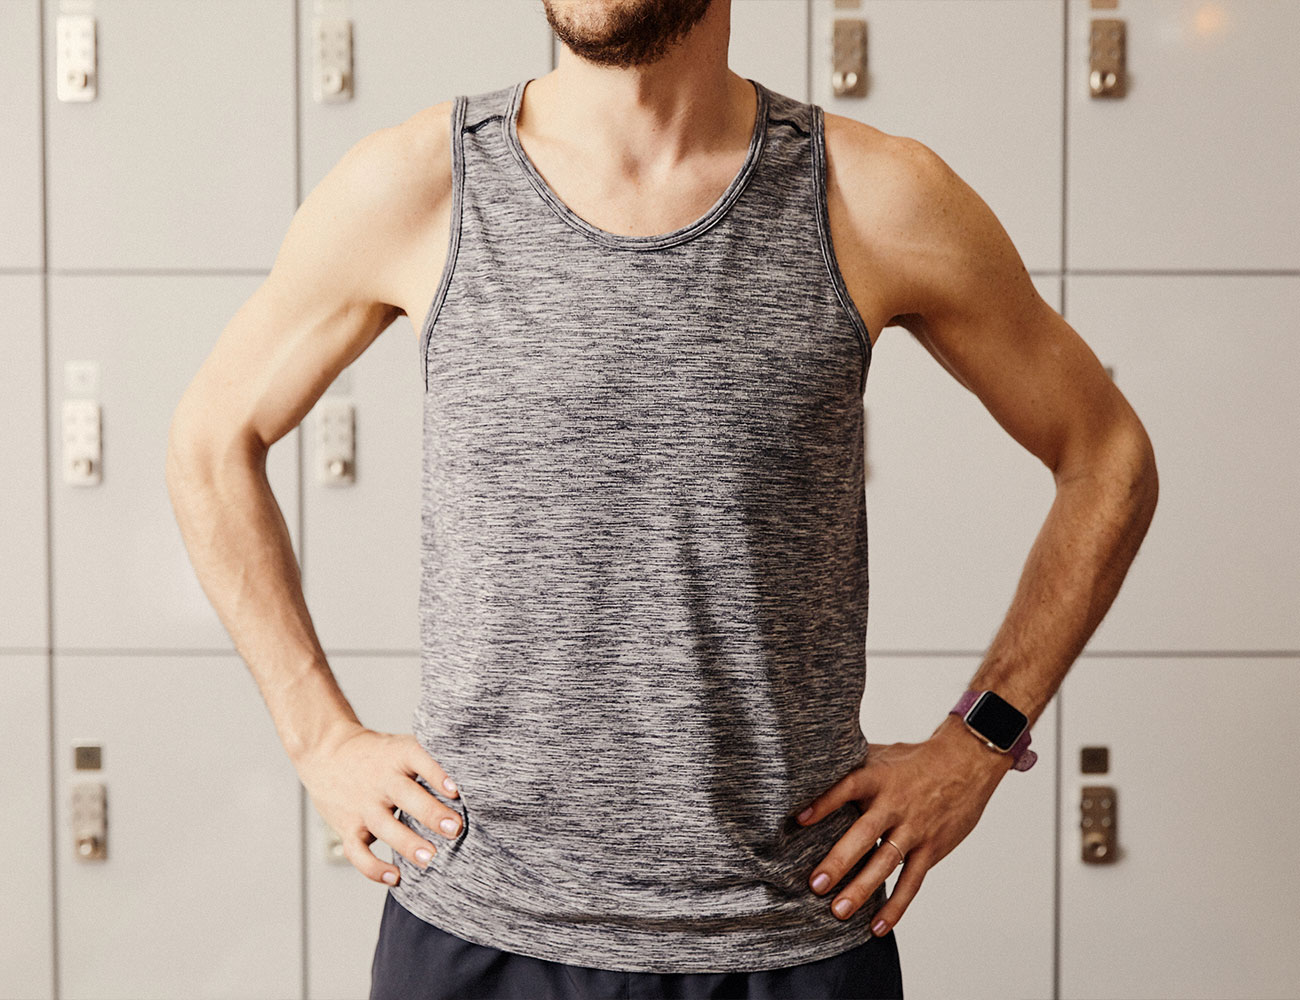 """b583f6cf0d """"[The tee and tank] both fit great for various workouts and Lululemon  always has new and fun colors,"""" Thompson says. The lightweight, breathable  fabric ..."""